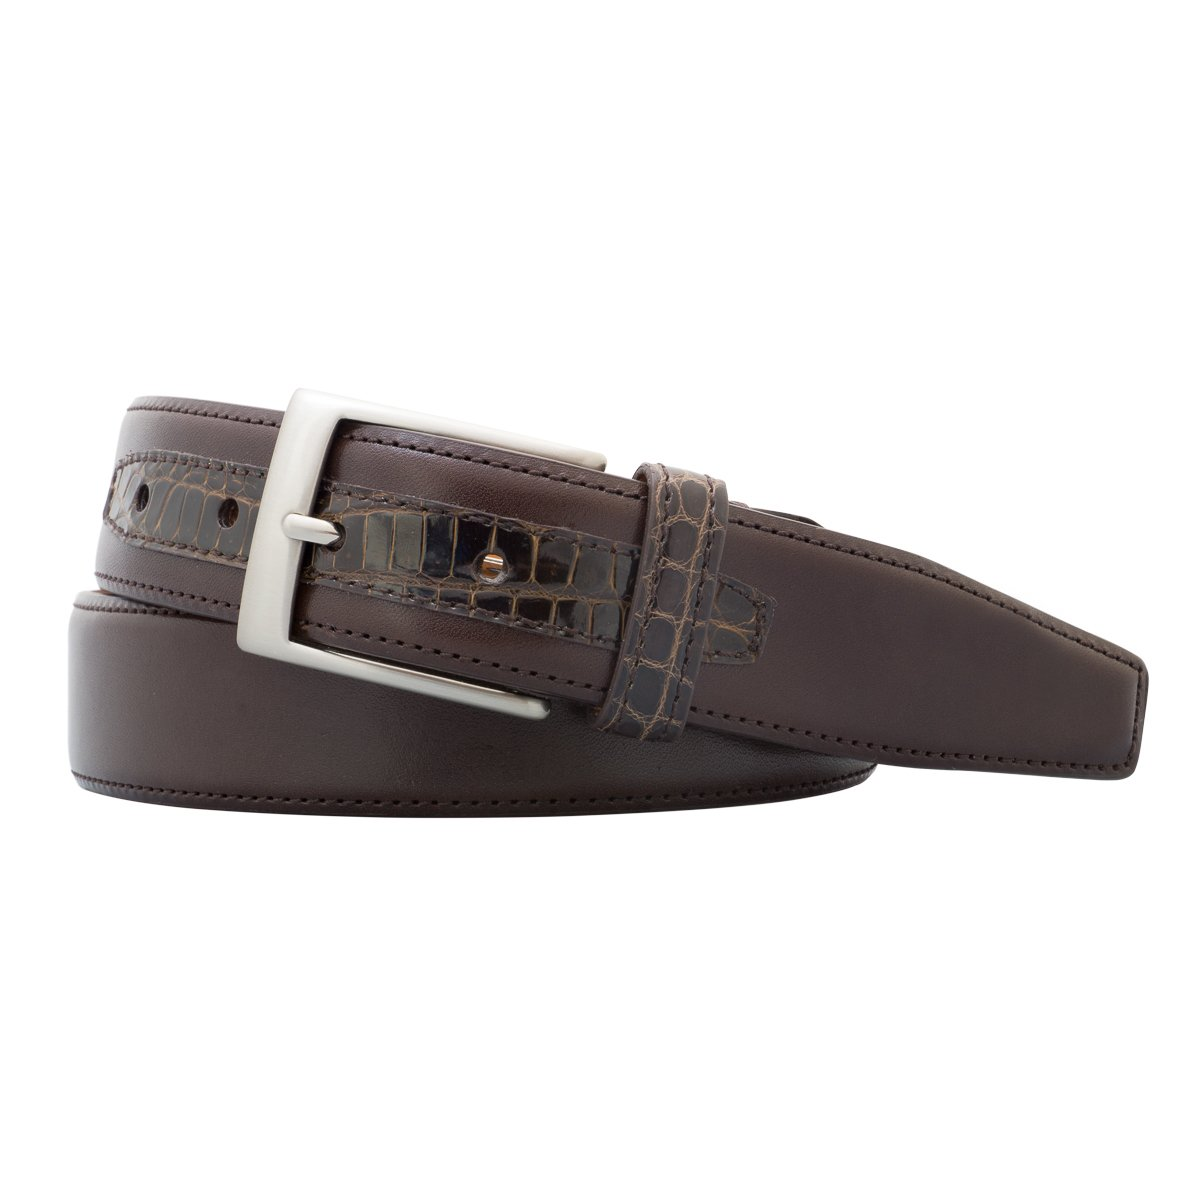 Monte Carlo Leather Belt with Genuine Crocodile Tab and Loop - Brown - 38'' Length